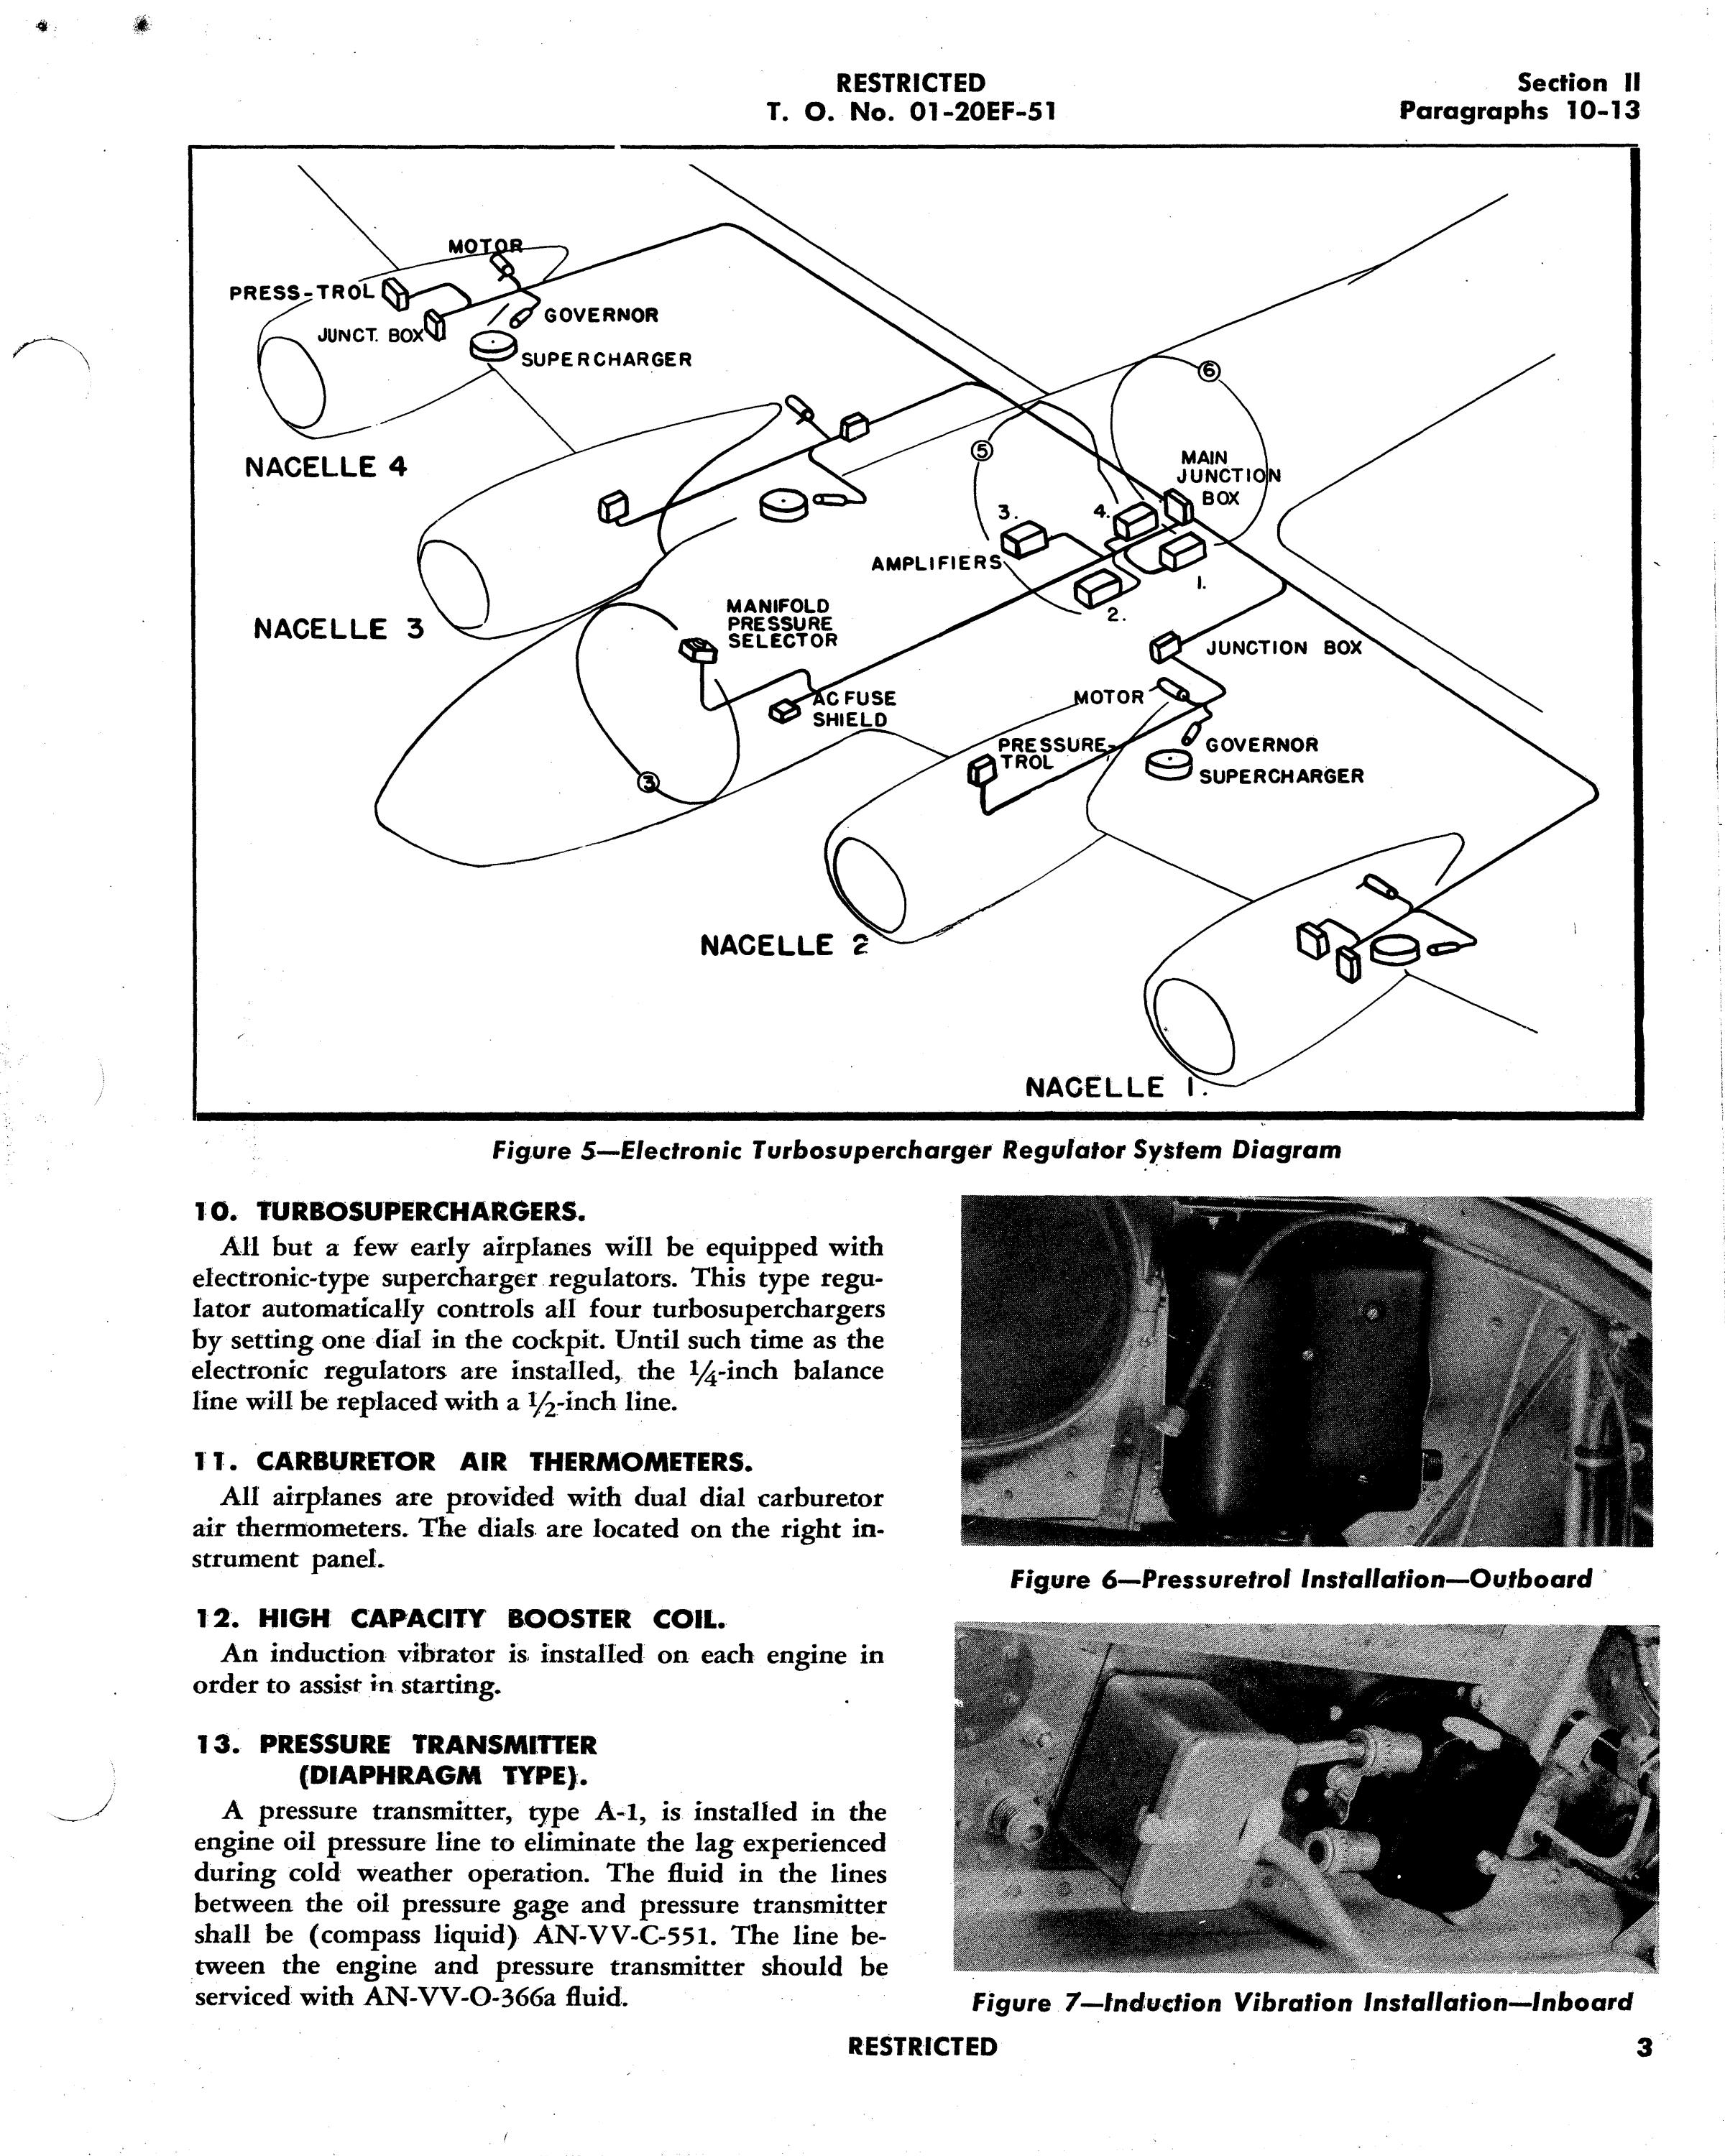 Sample page 7 from AirCorps Library document: Handbook of Cold Weather Operations & Maintenance - B17F, B-17G